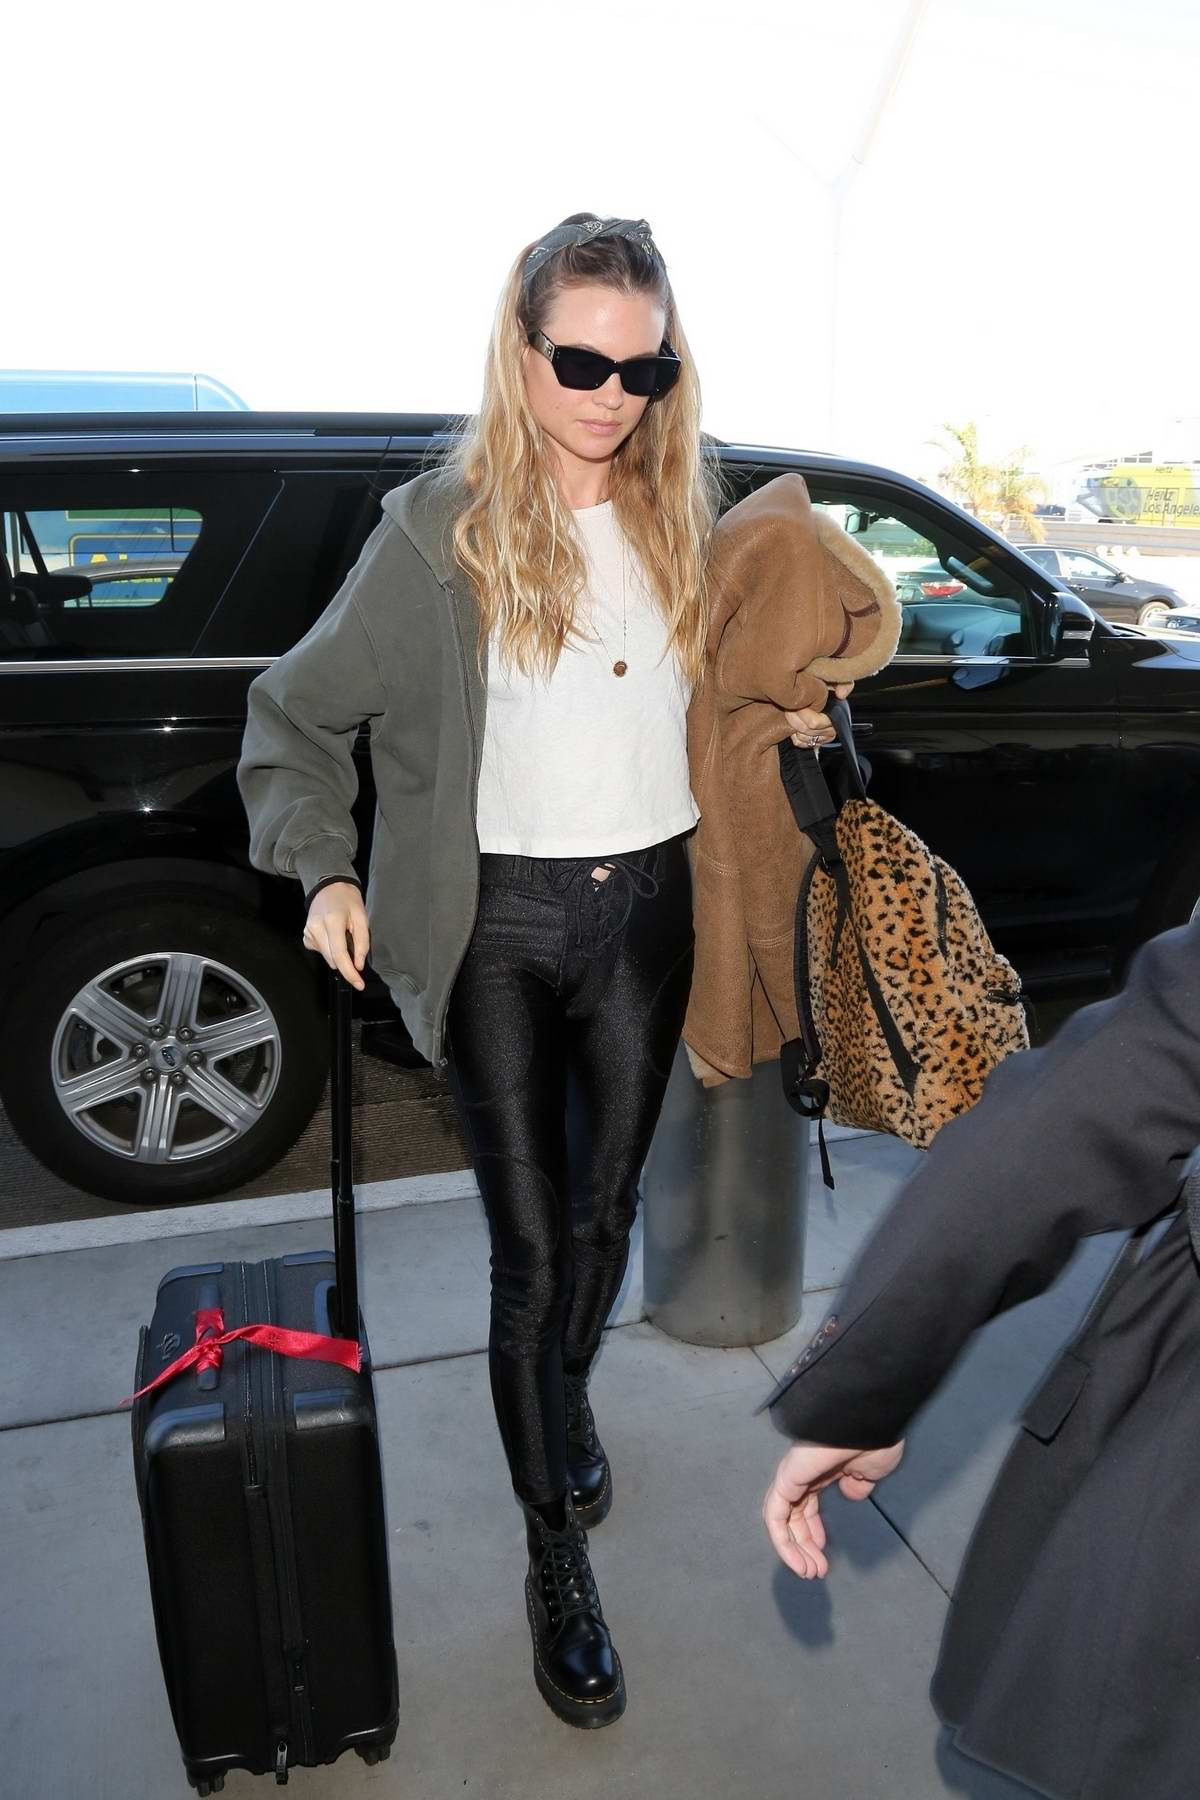 Behati Prinsloo looks stylish as she arrives at LAX airport in Los Angeles